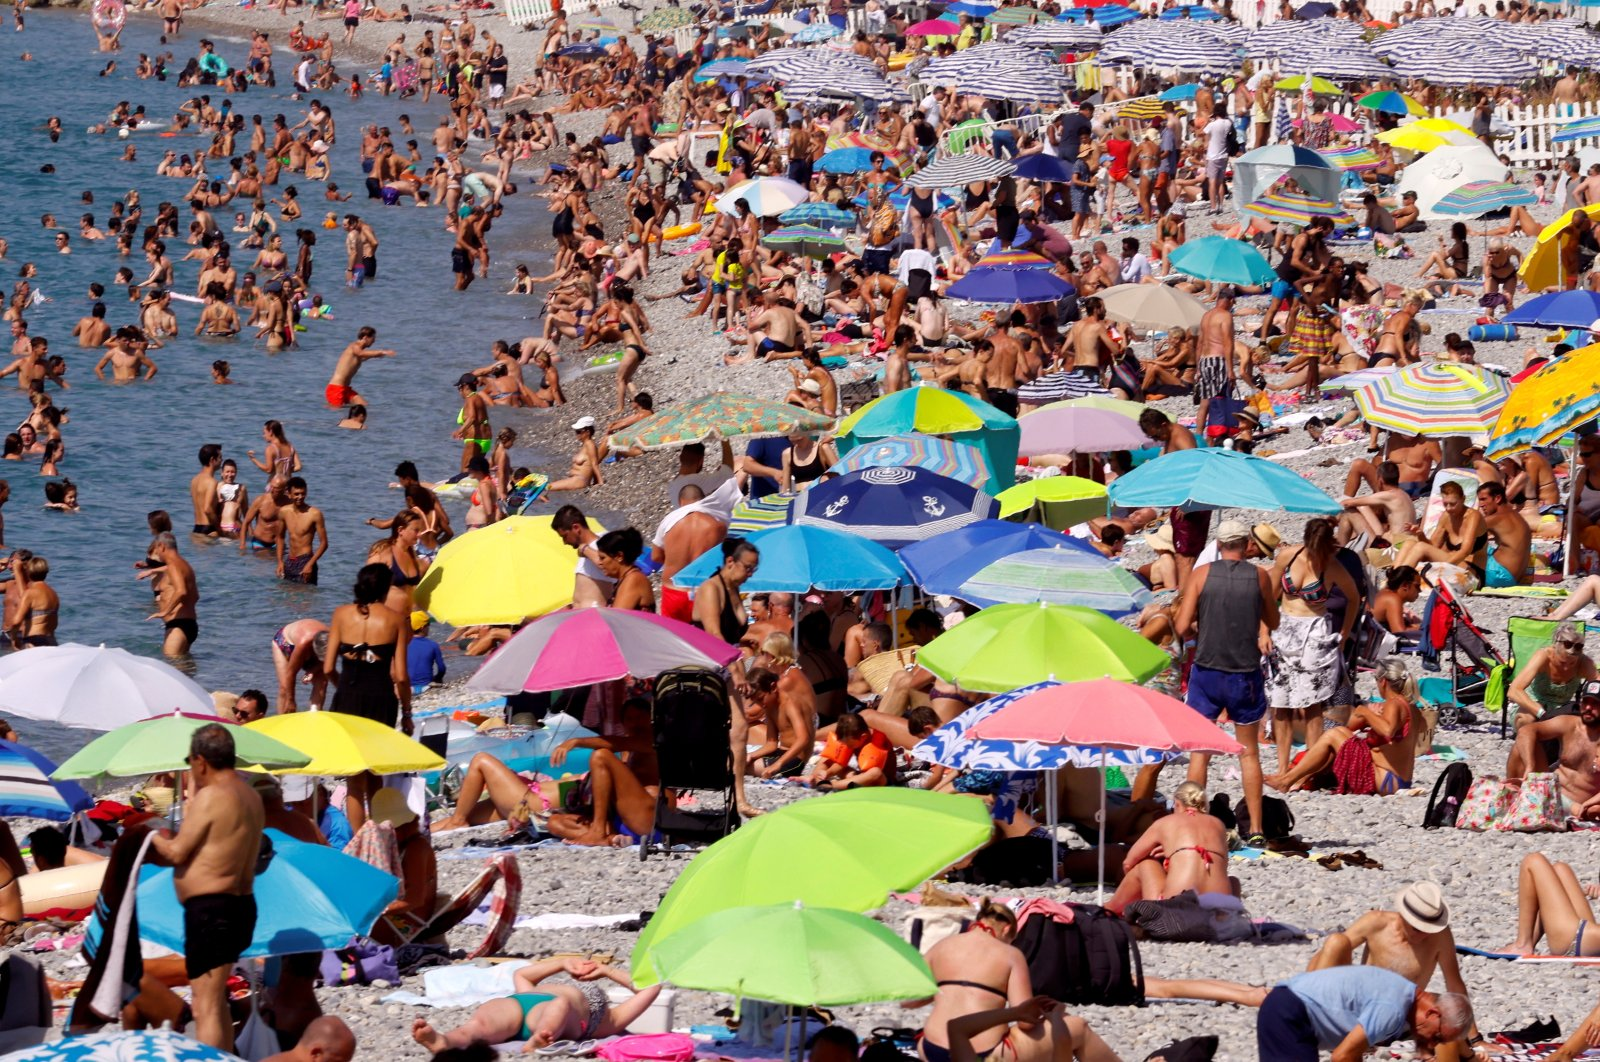 People enjoy a warm and sunny day on the beach of the Promenade des Anglais in Nice, Aug. 14, 2021. (Reuters Photo)